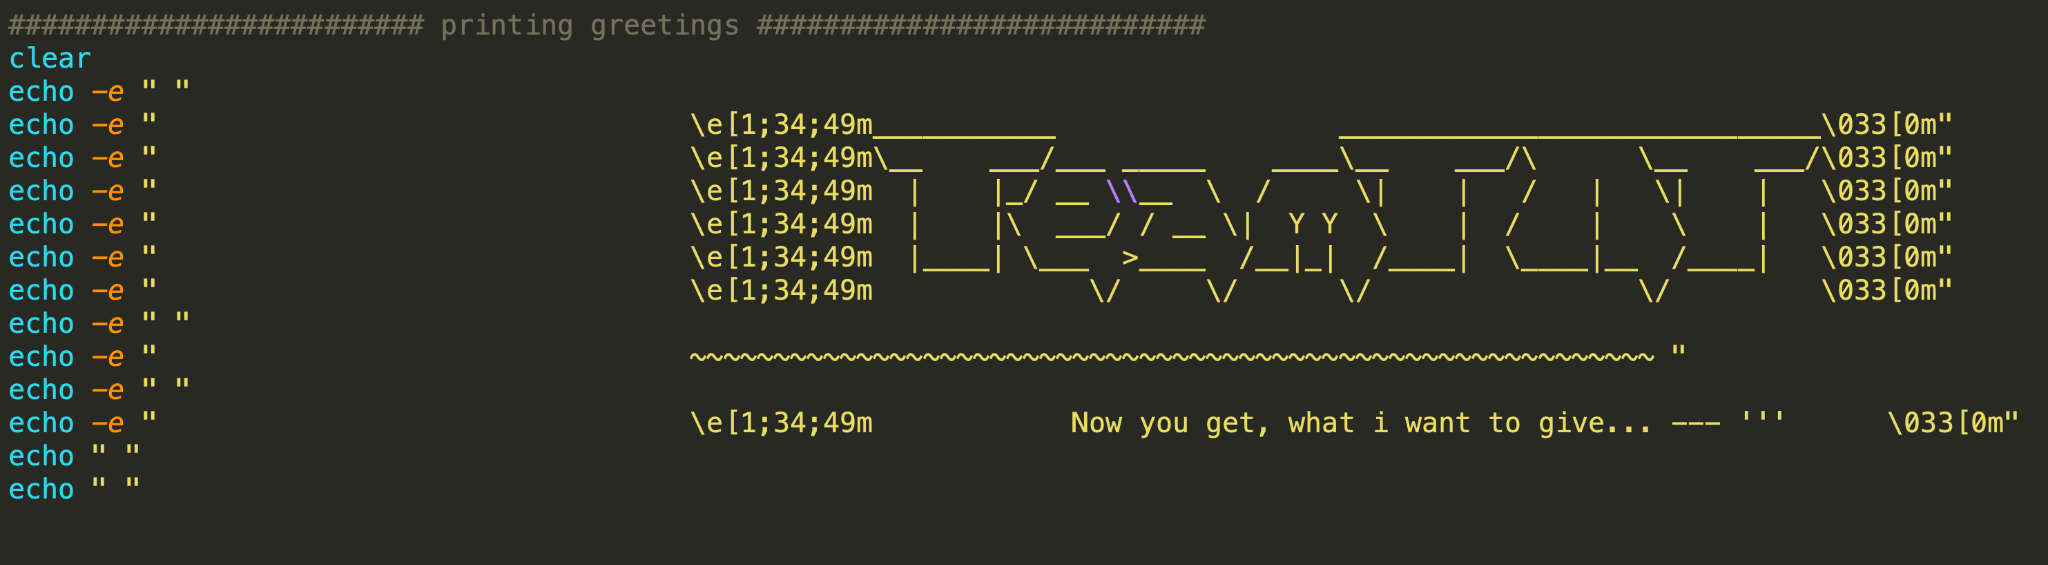 The TeamTNT Botnet B greeting appears here.